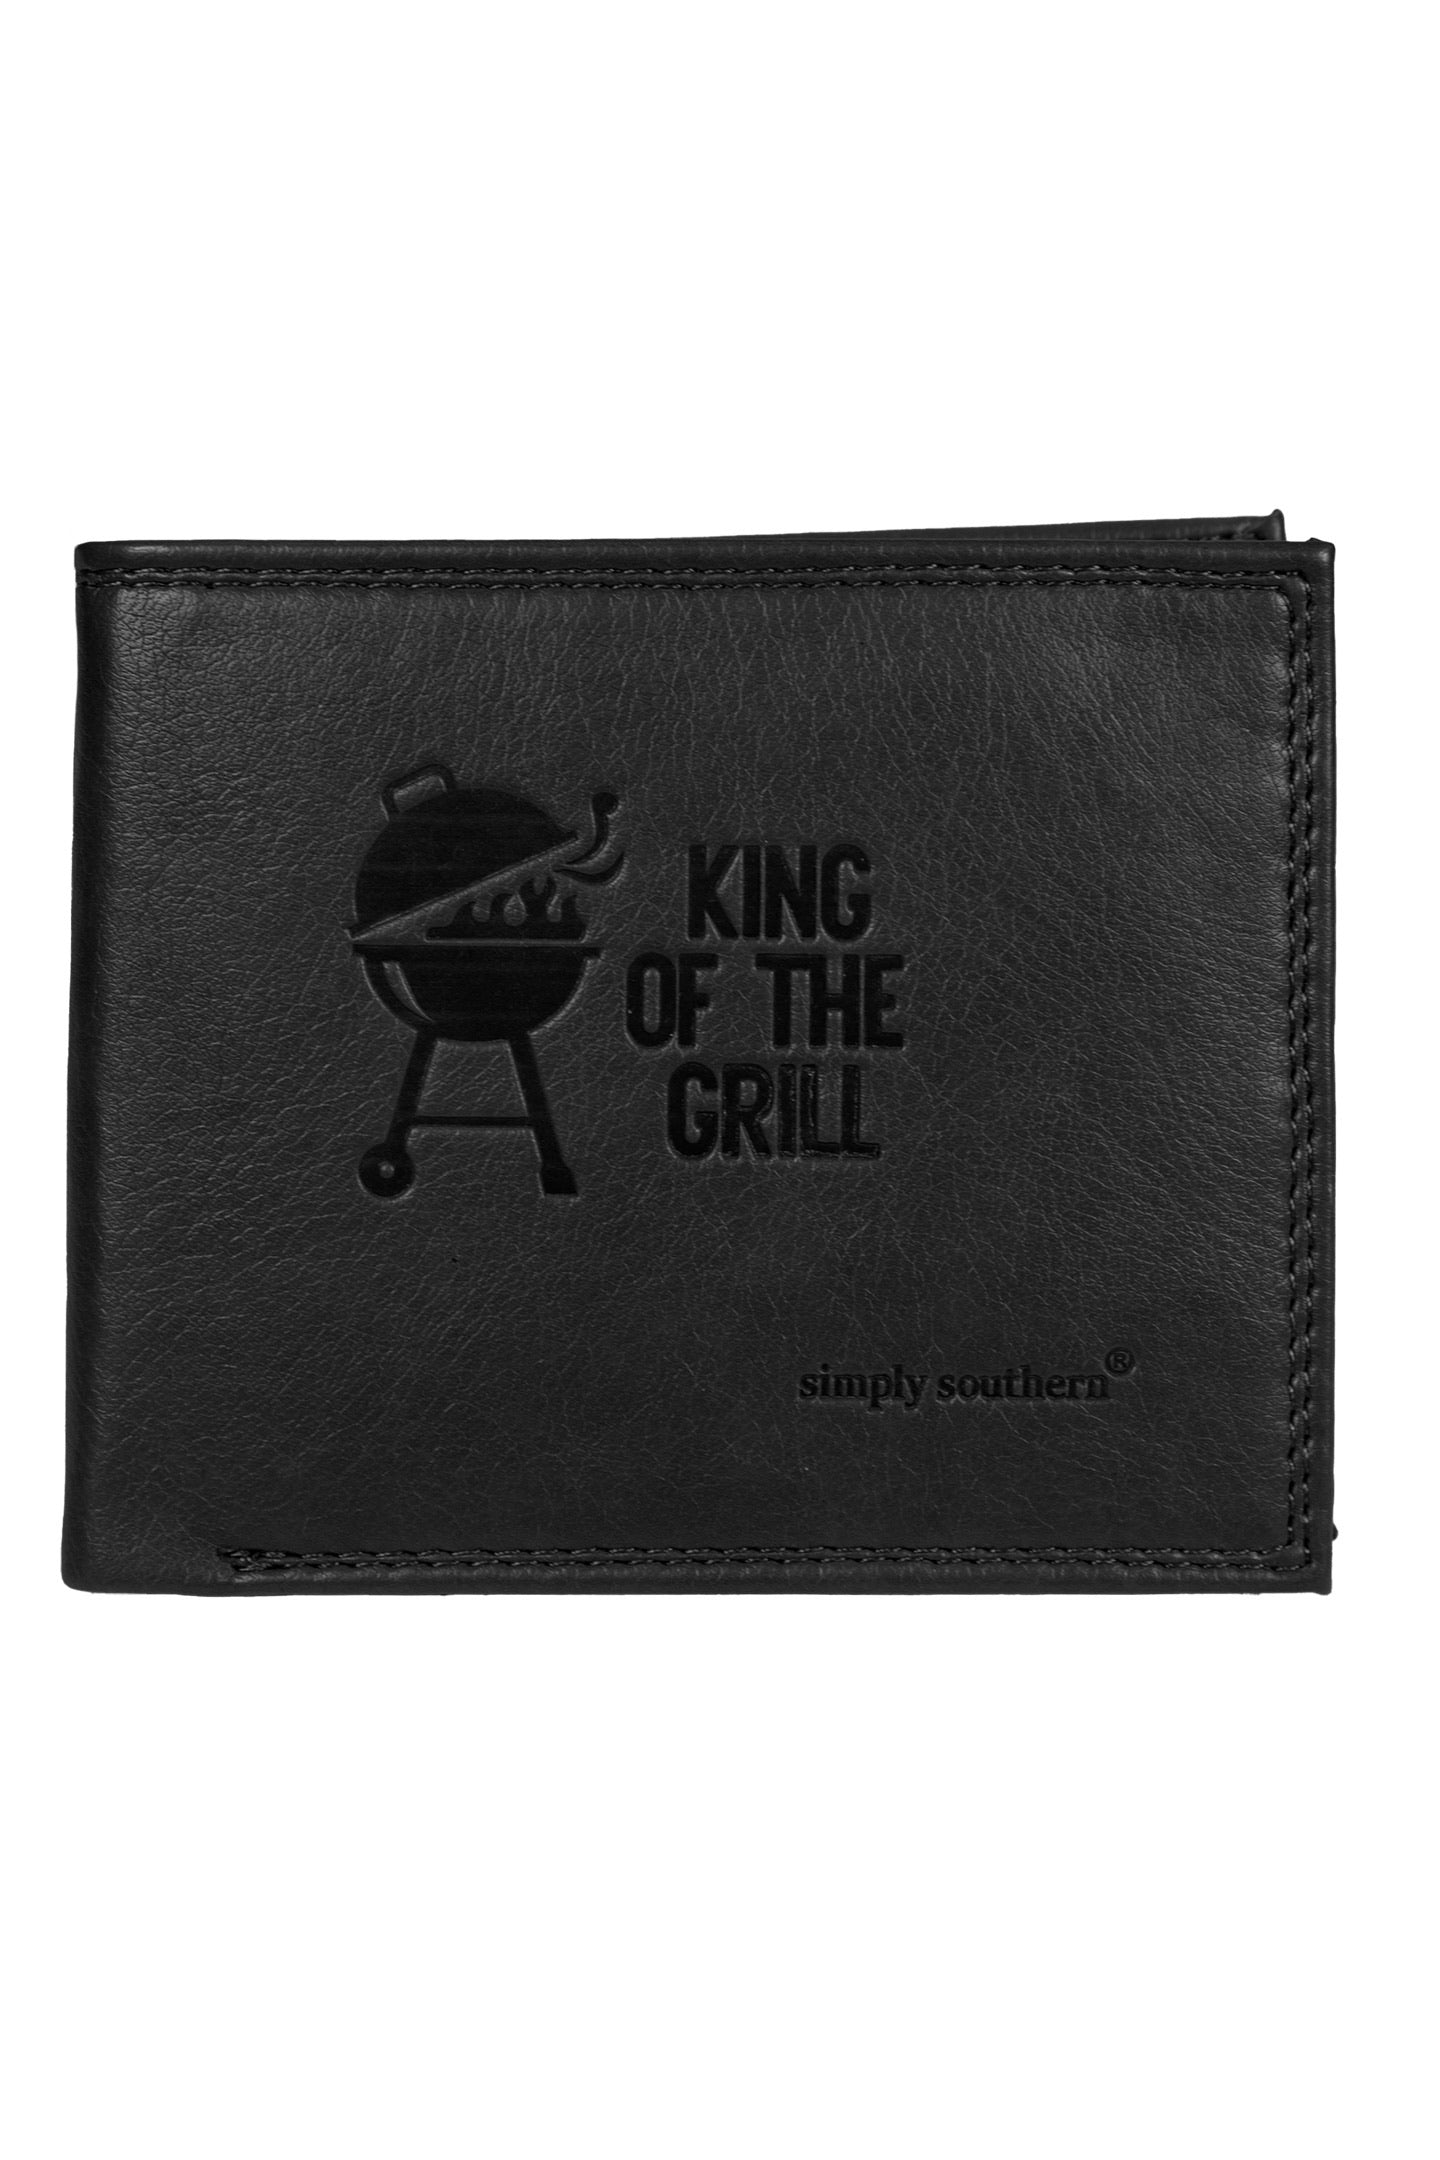 """King of the Grill"" Leather Wallet by Simply Southern"